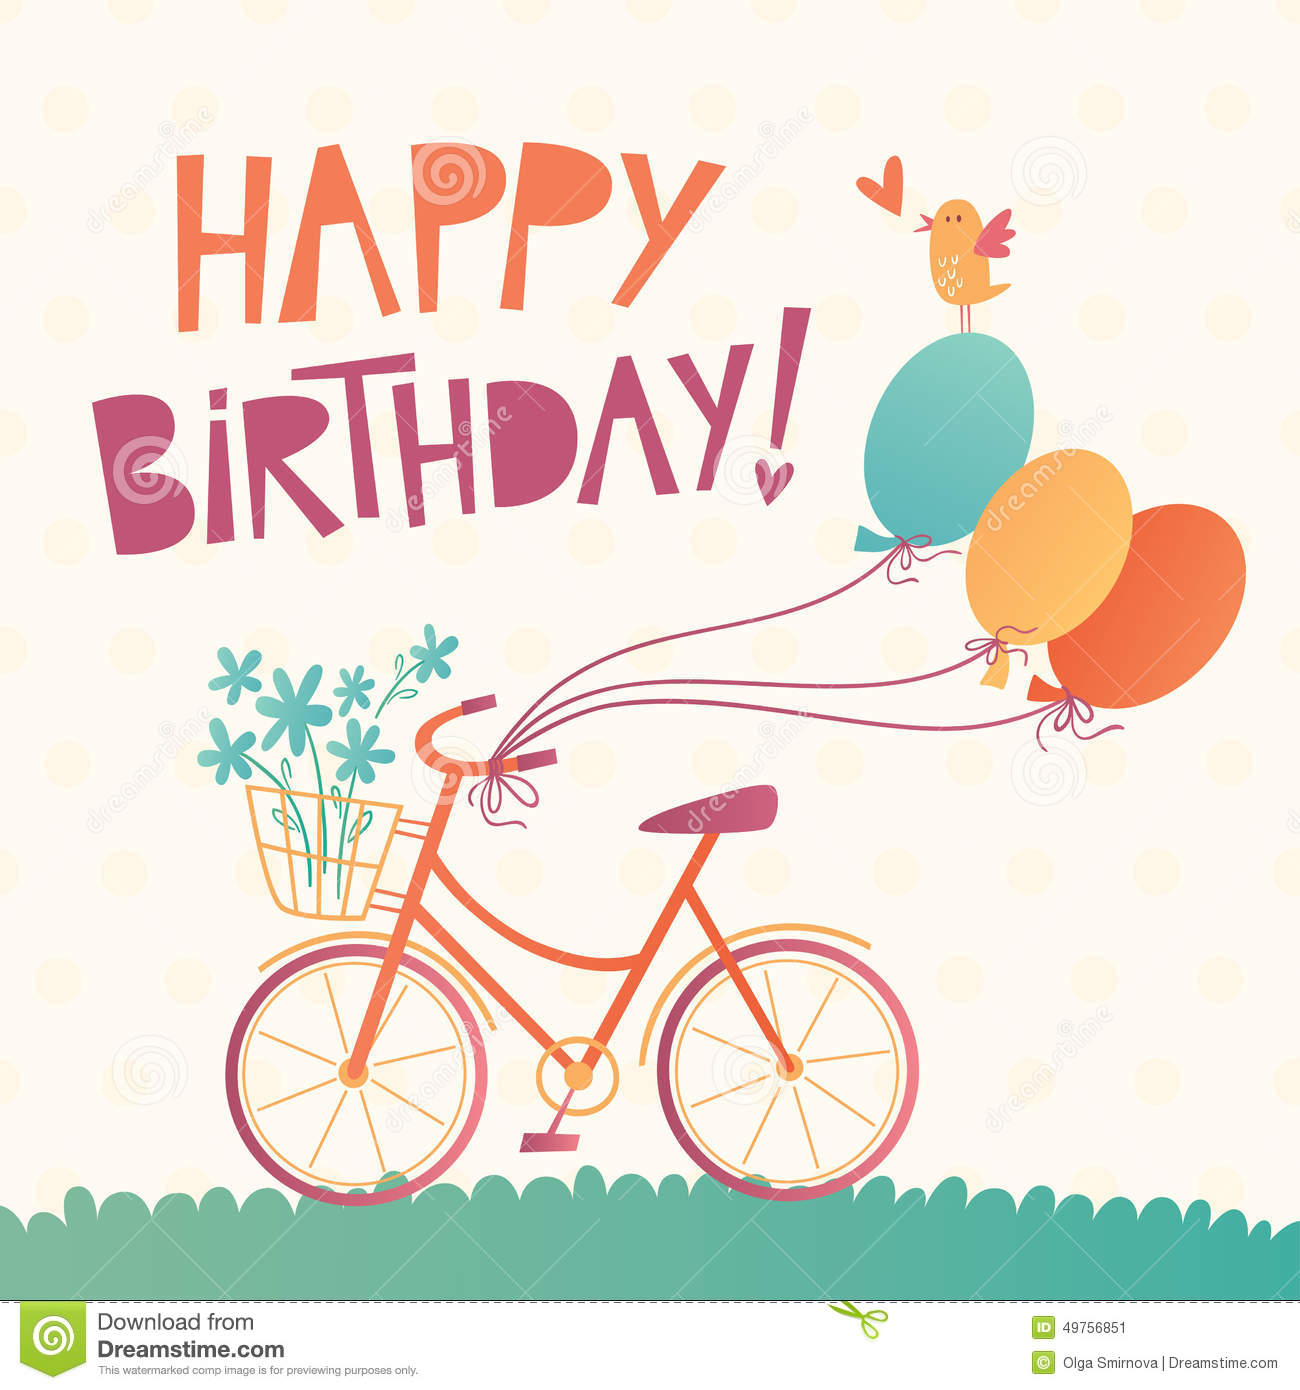 Happy Birthday vector card with a bicycle